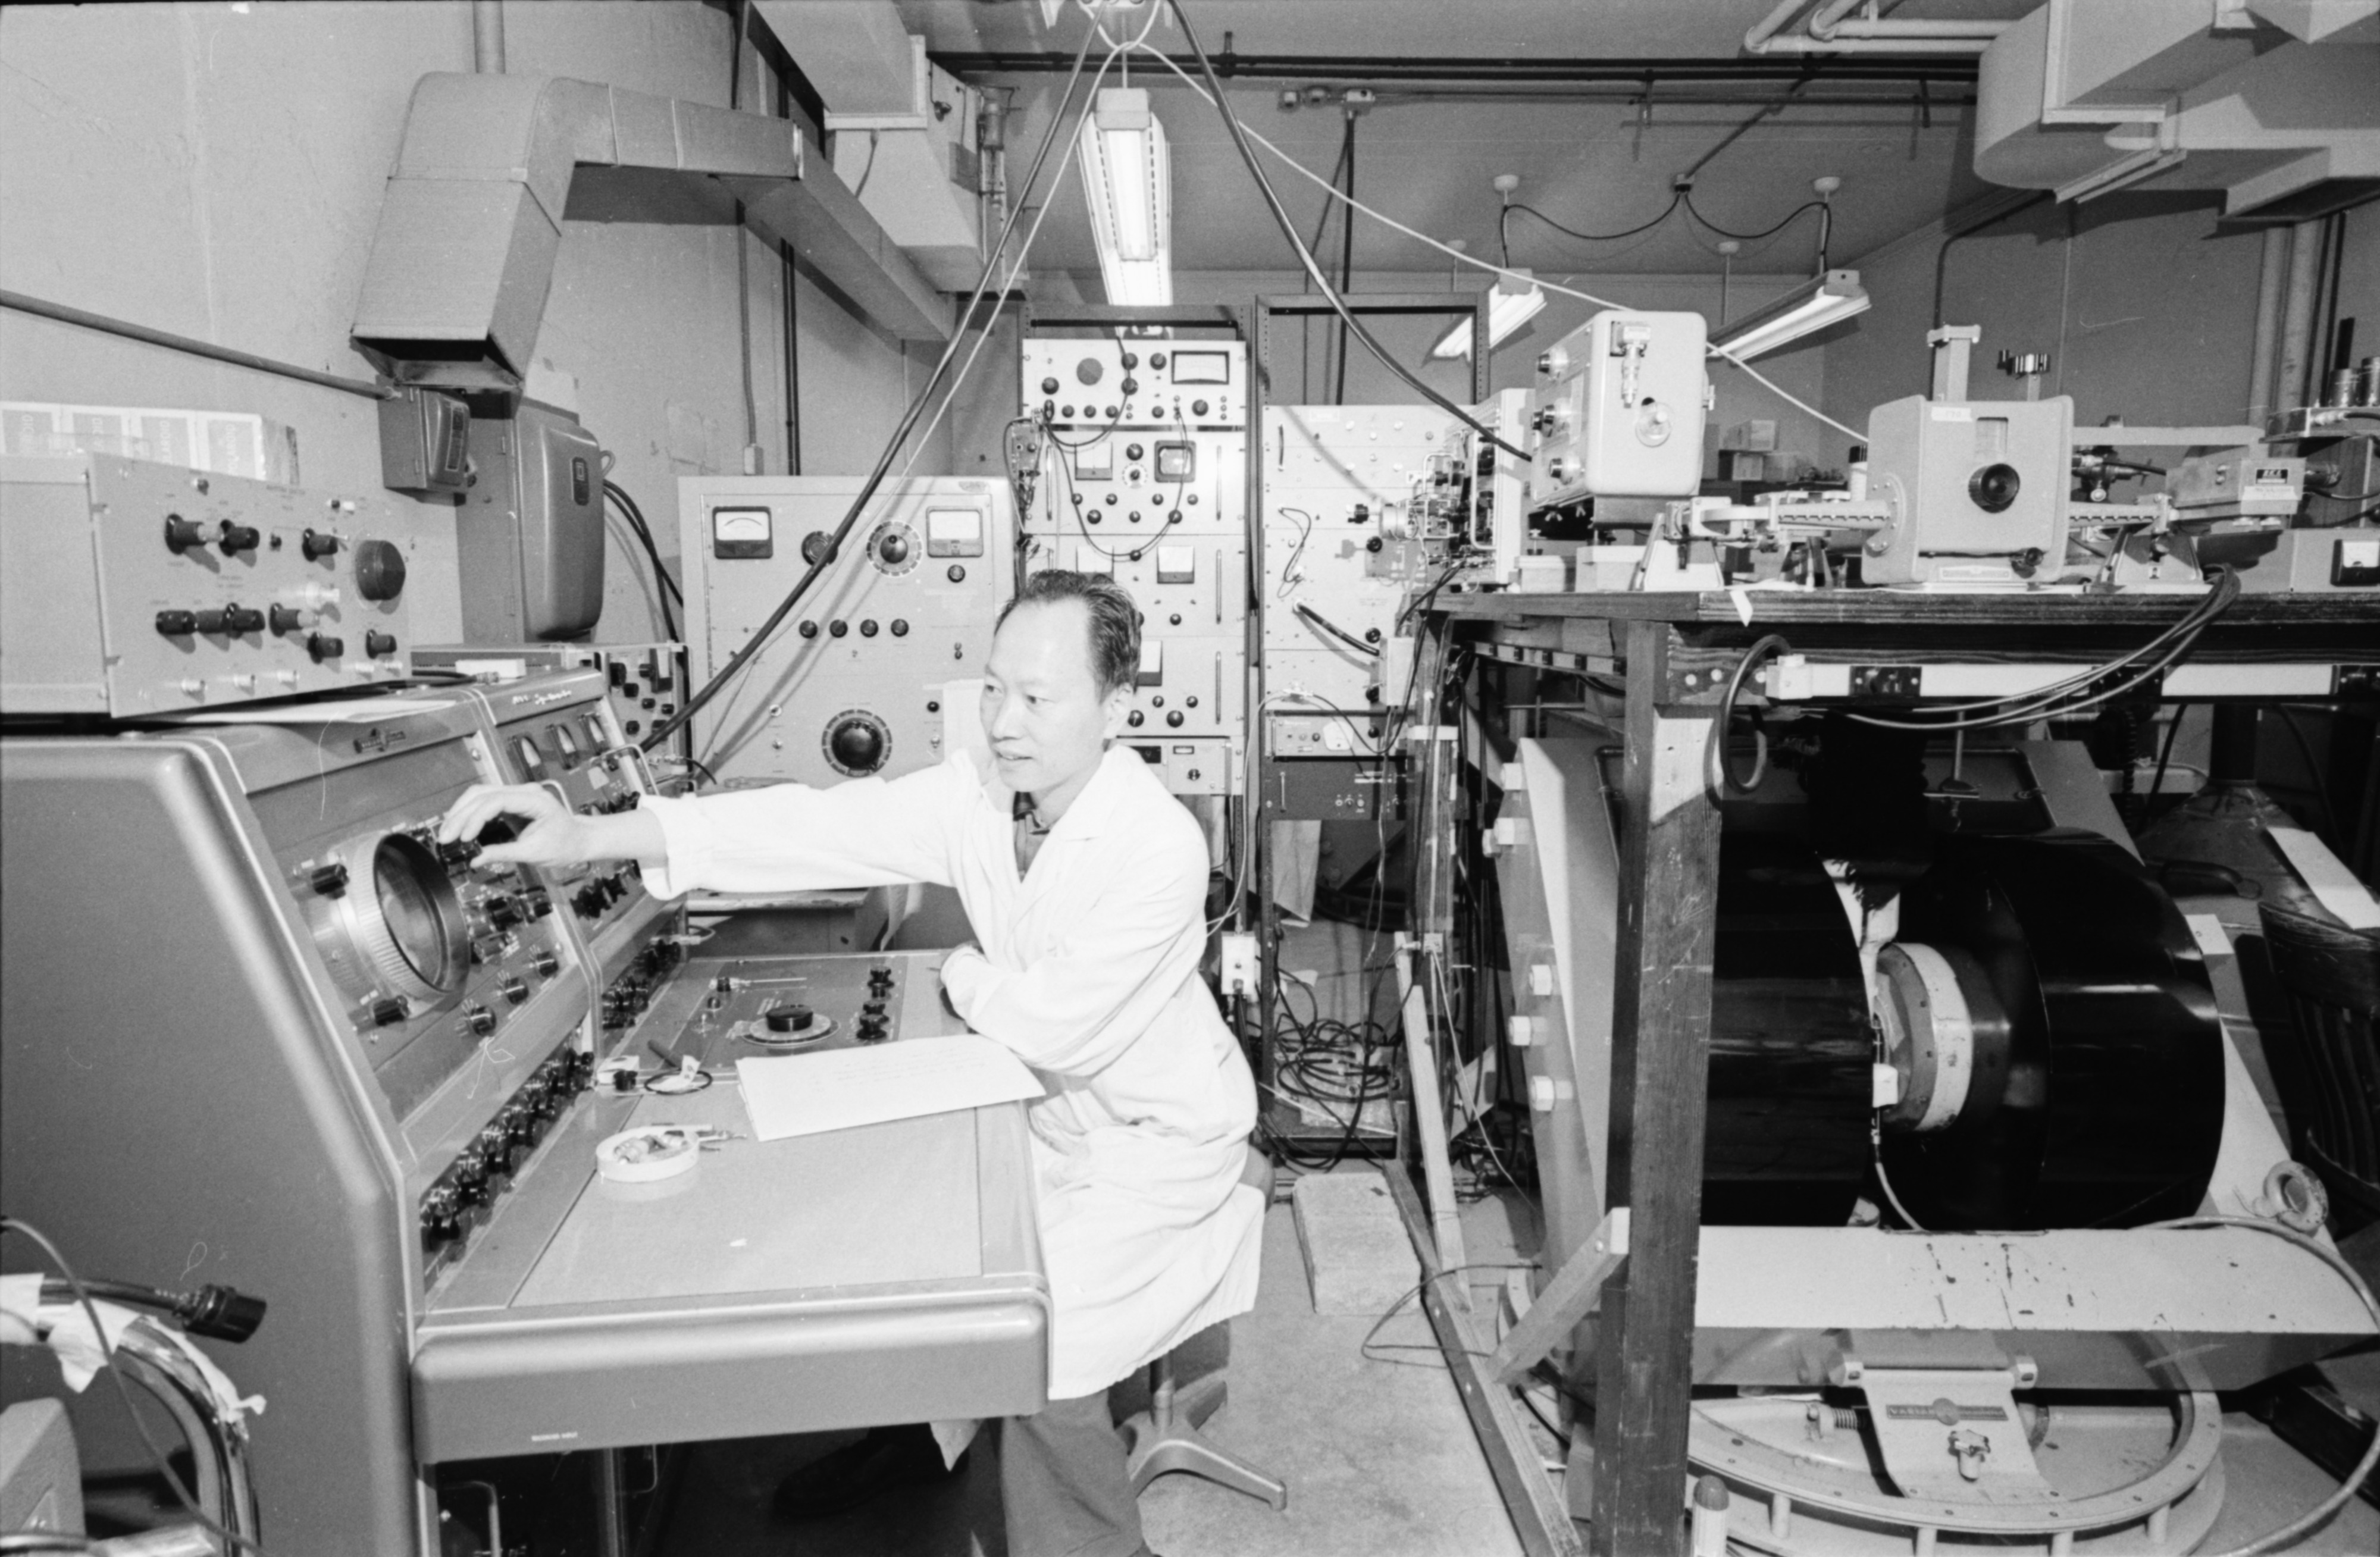 Derling-Tseng in the Phoenix Memorial Laboratory, North Campus, August 1968 image